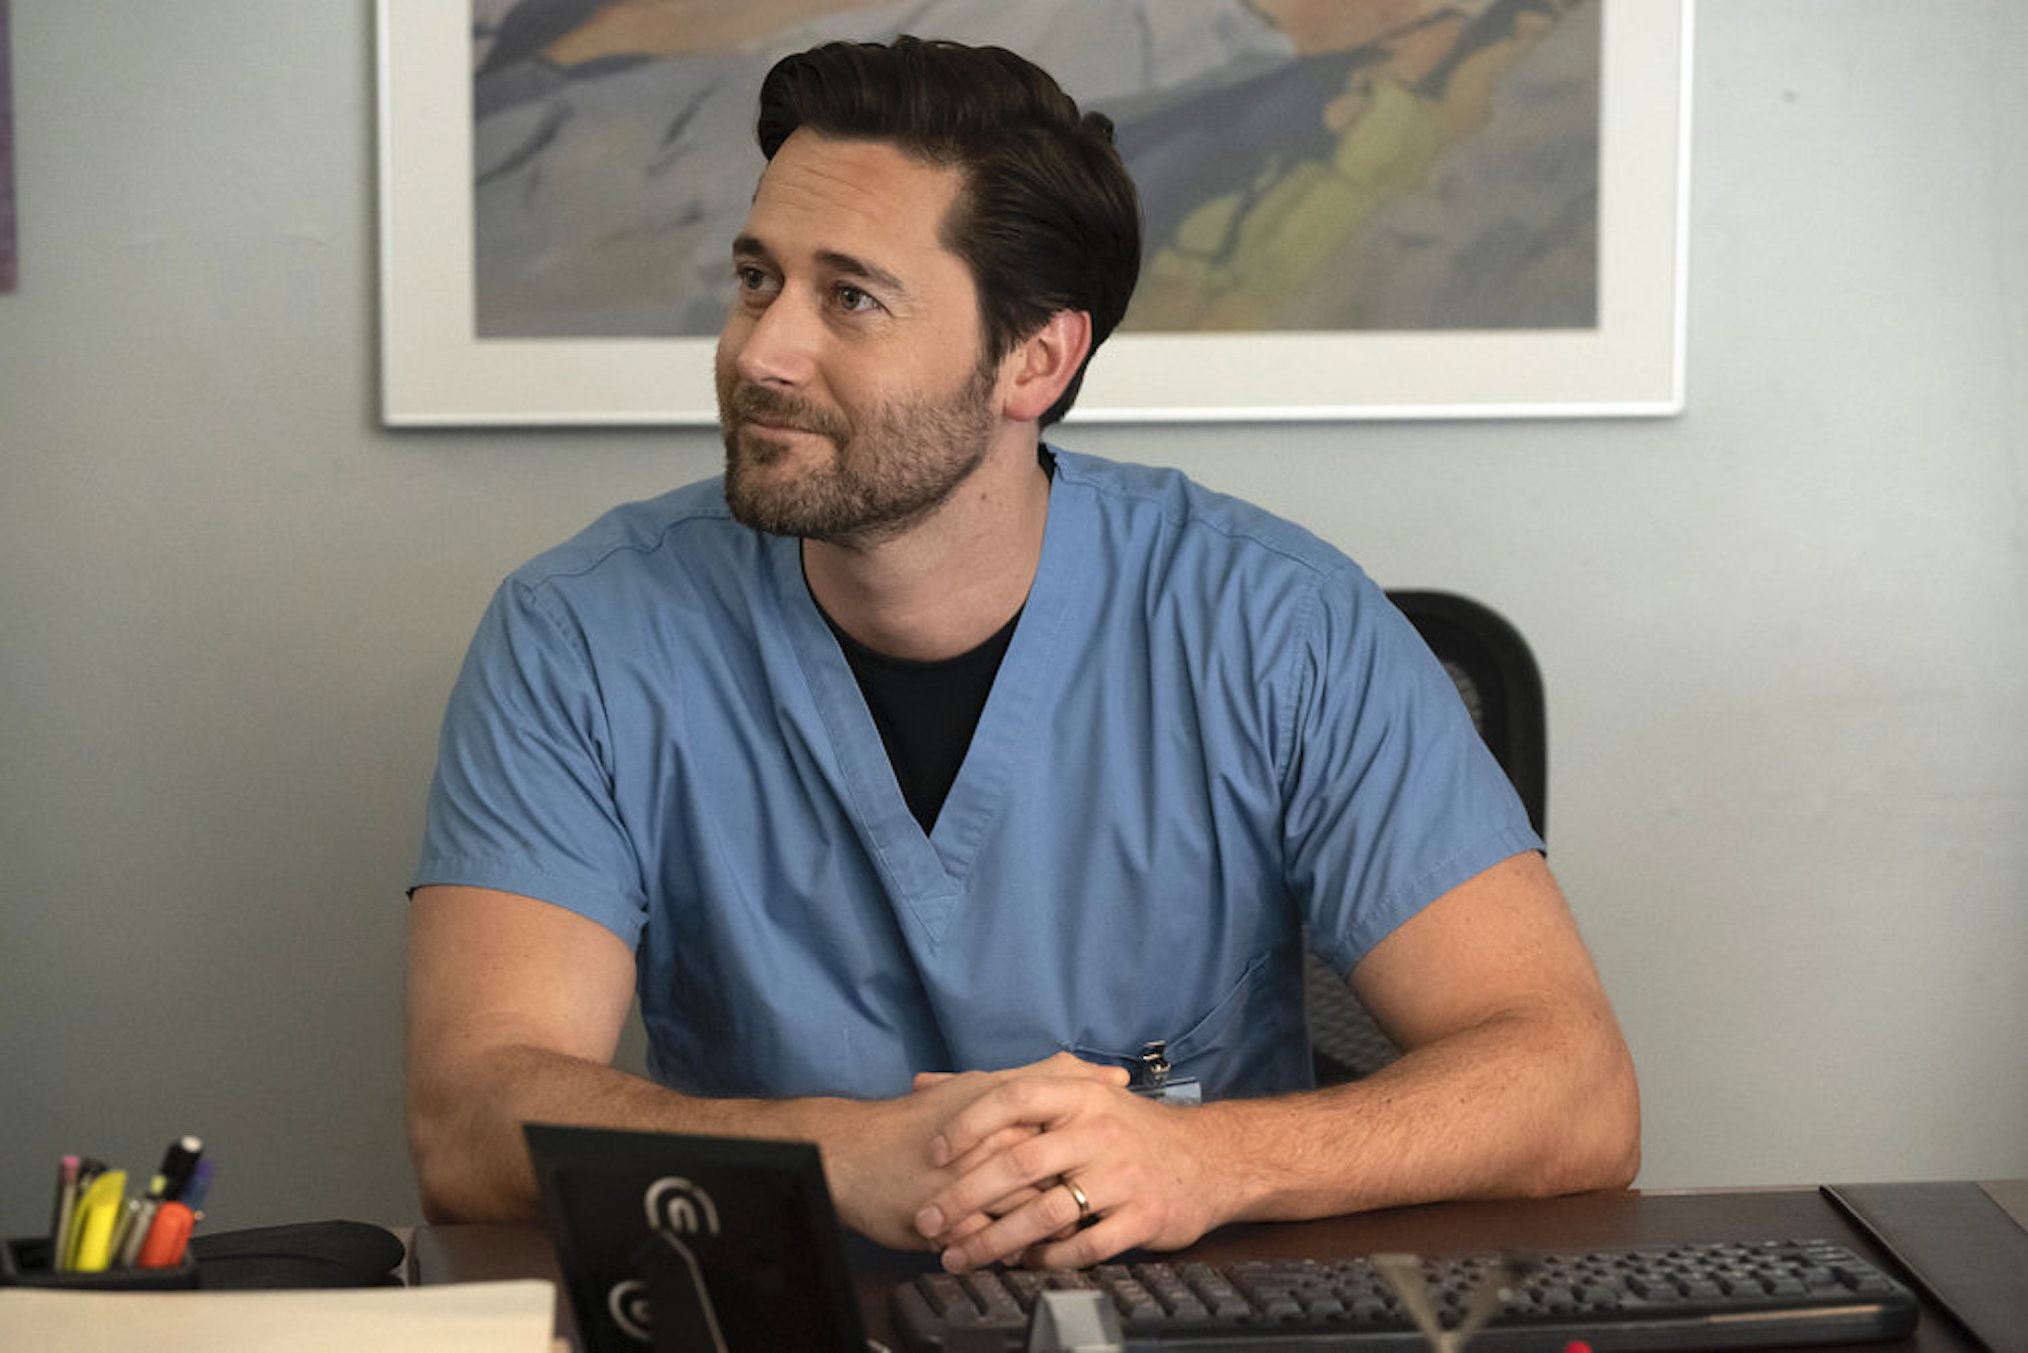 New Amsterdam Season 3 Burning Questions